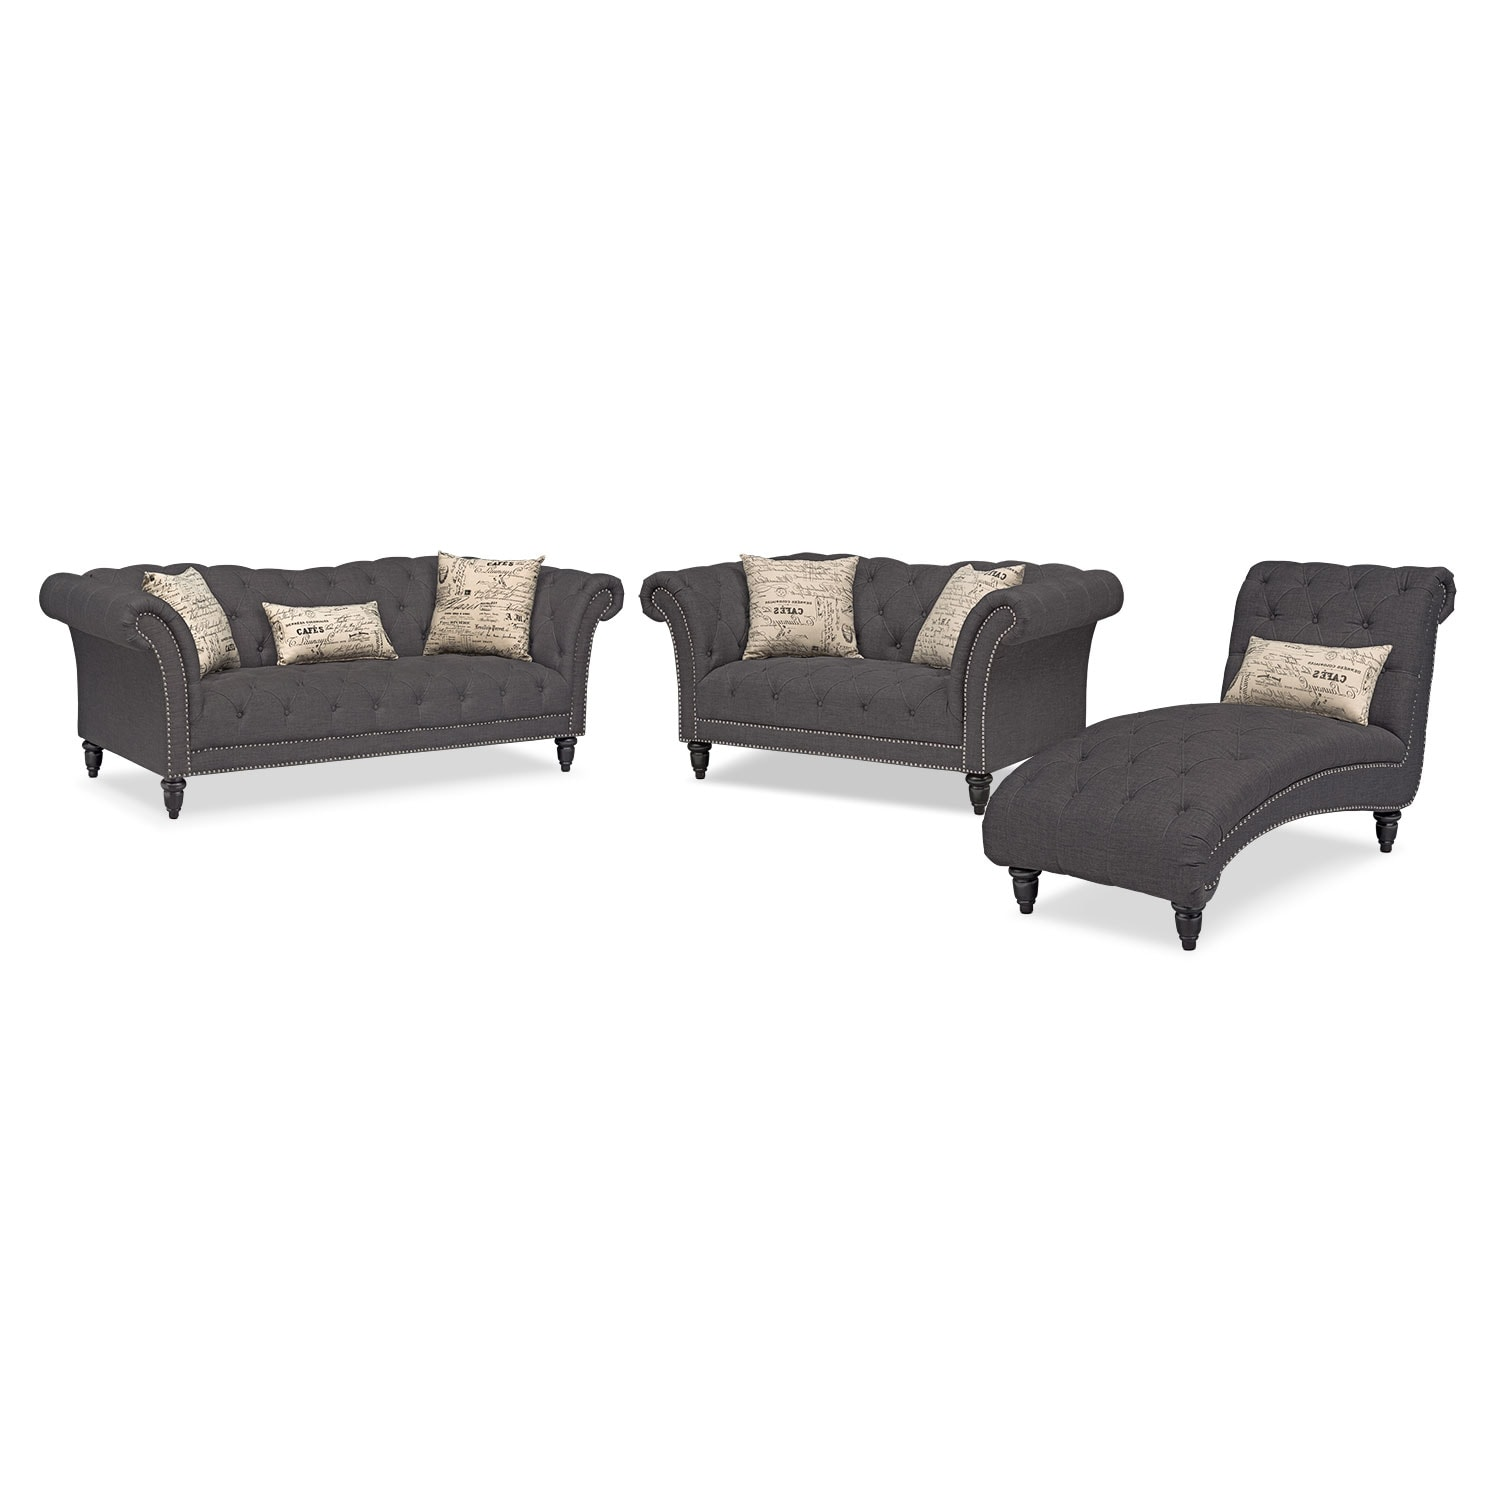 Marisol sofa loveseat and chaise set charcoal for American signature furniture commercial chaise